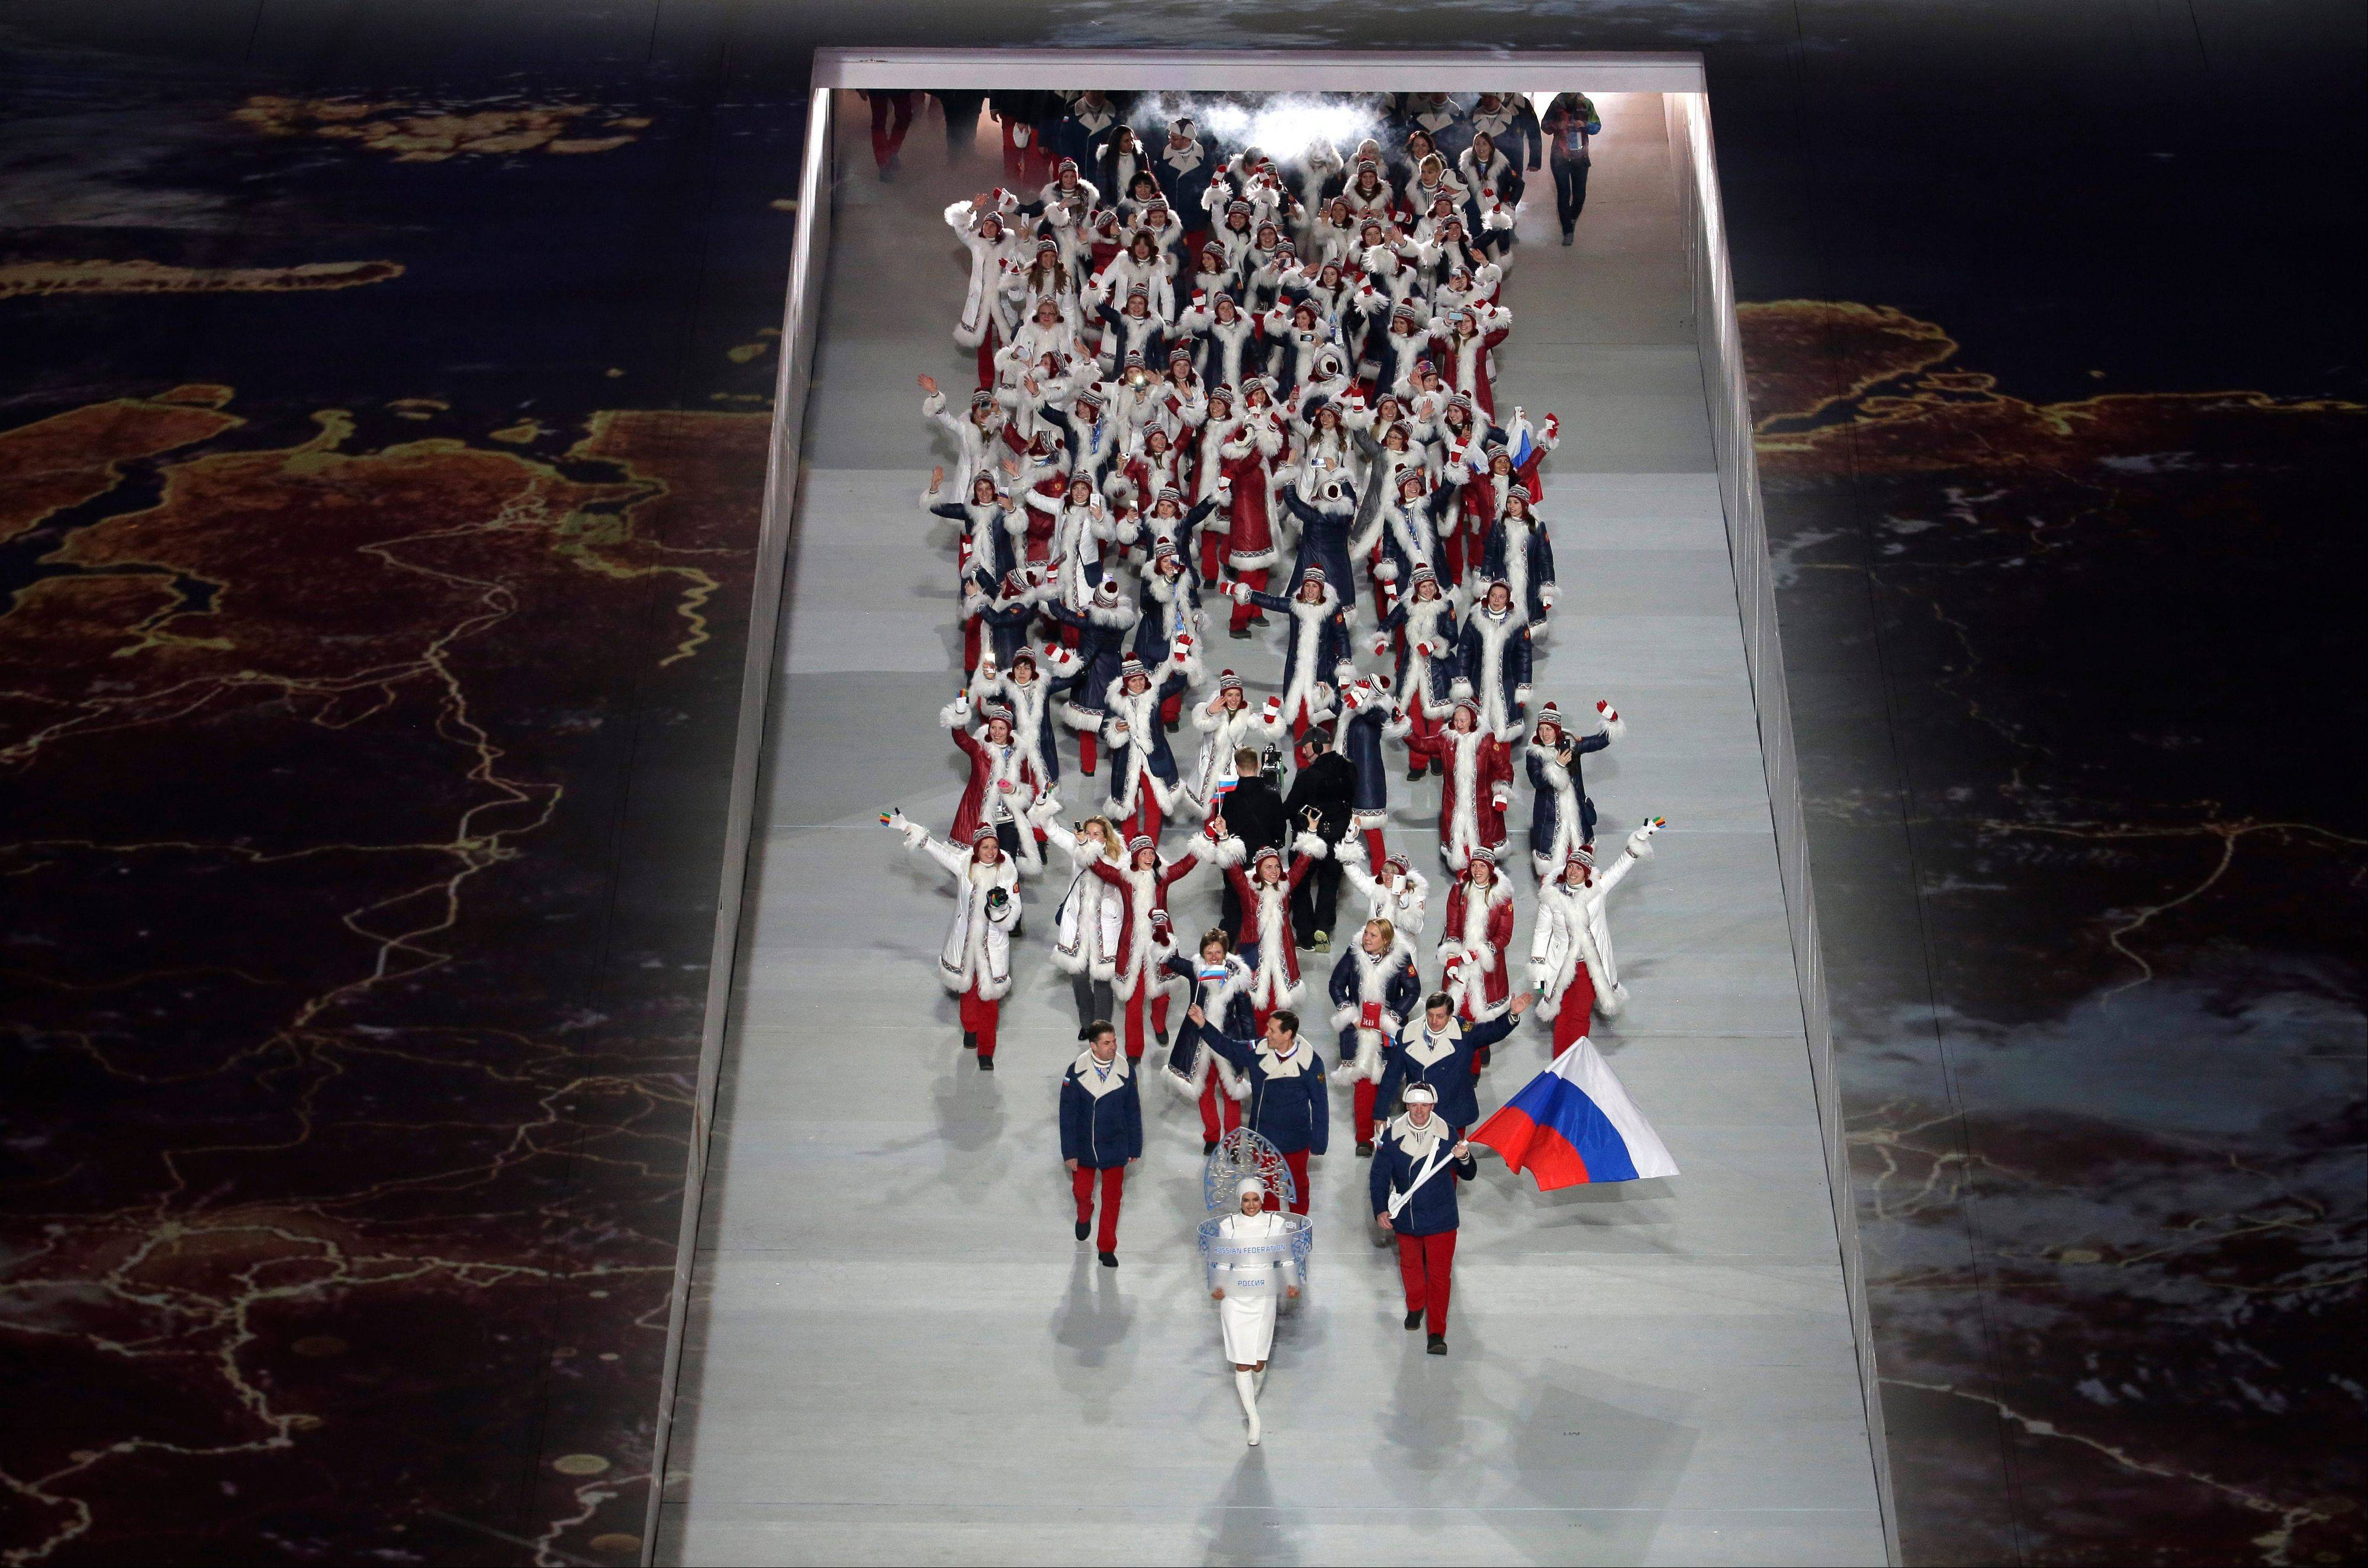 Alexander Zubkov of Russia holds her national flag and enters the arena with teammates during the opening ceremony.